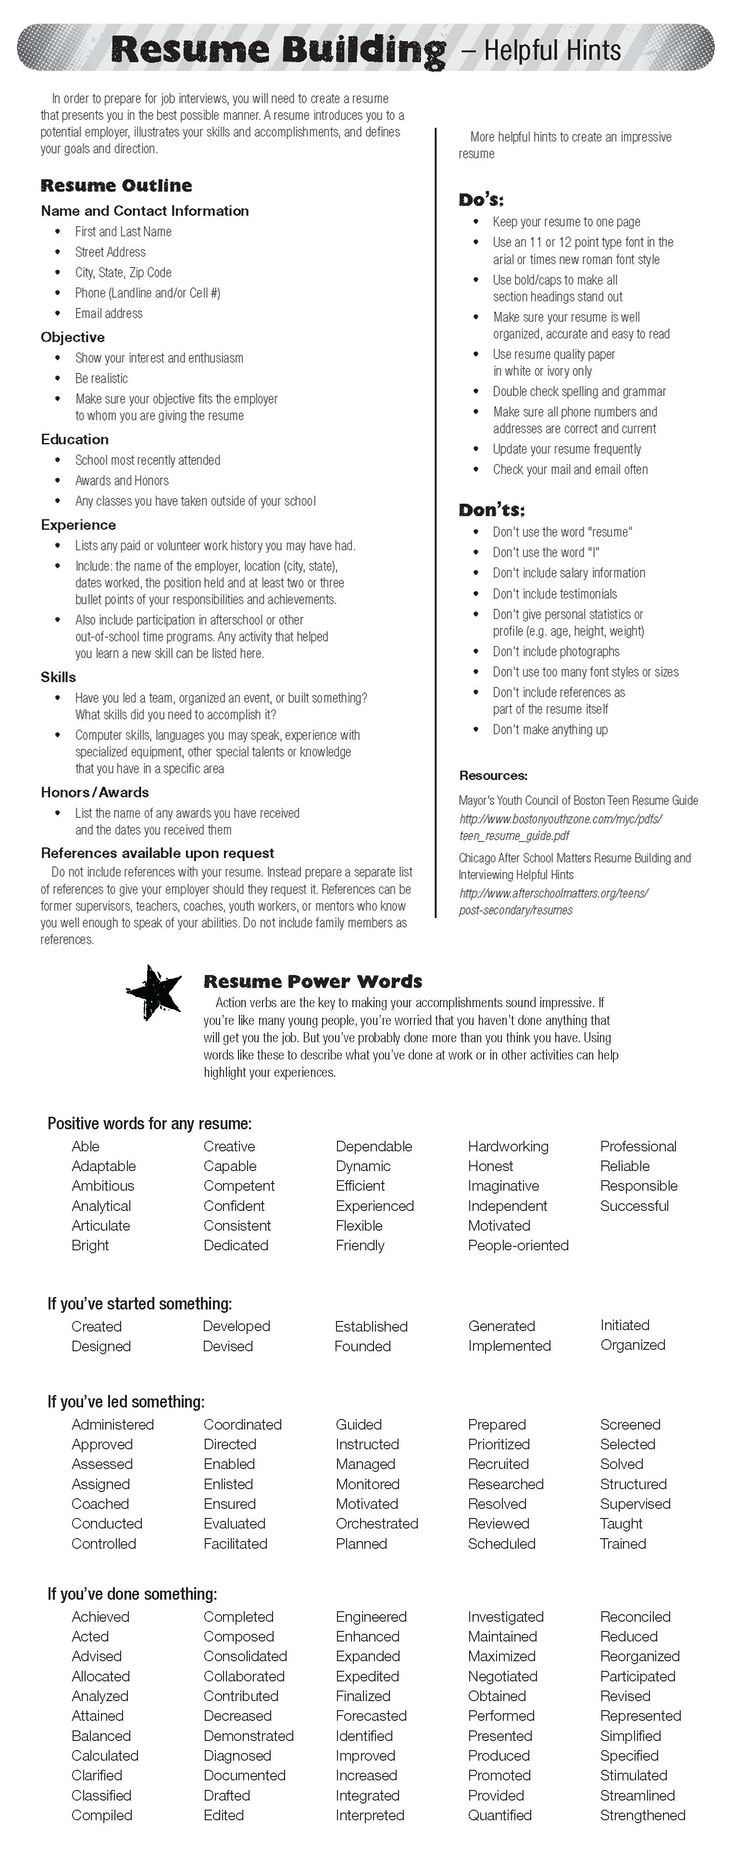 Opposenewapstandardsus  Pleasant  Ideas About Resume On Pinterest  Cv Format Resume Cv And  With Excellent  Ideas About Resume On Pinterest  Cv Format Resume Cv And Resume Templates With Attractive Resume Skill Examples Also How To Put Together A Resume In Addition Summary Of Qualifications Resume And Skills To Put On Your Resume As Well As How Long Should Resume Be Additionally Education Resume Examples From Pinterestcom With Opposenewapstandardsus  Excellent  Ideas About Resume On Pinterest  Cv Format Resume Cv And  With Attractive  Ideas About Resume On Pinterest  Cv Format Resume Cv And Resume Templates And Pleasant Resume Skill Examples Also How To Put Together A Resume In Addition Summary Of Qualifications Resume From Pinterestcom